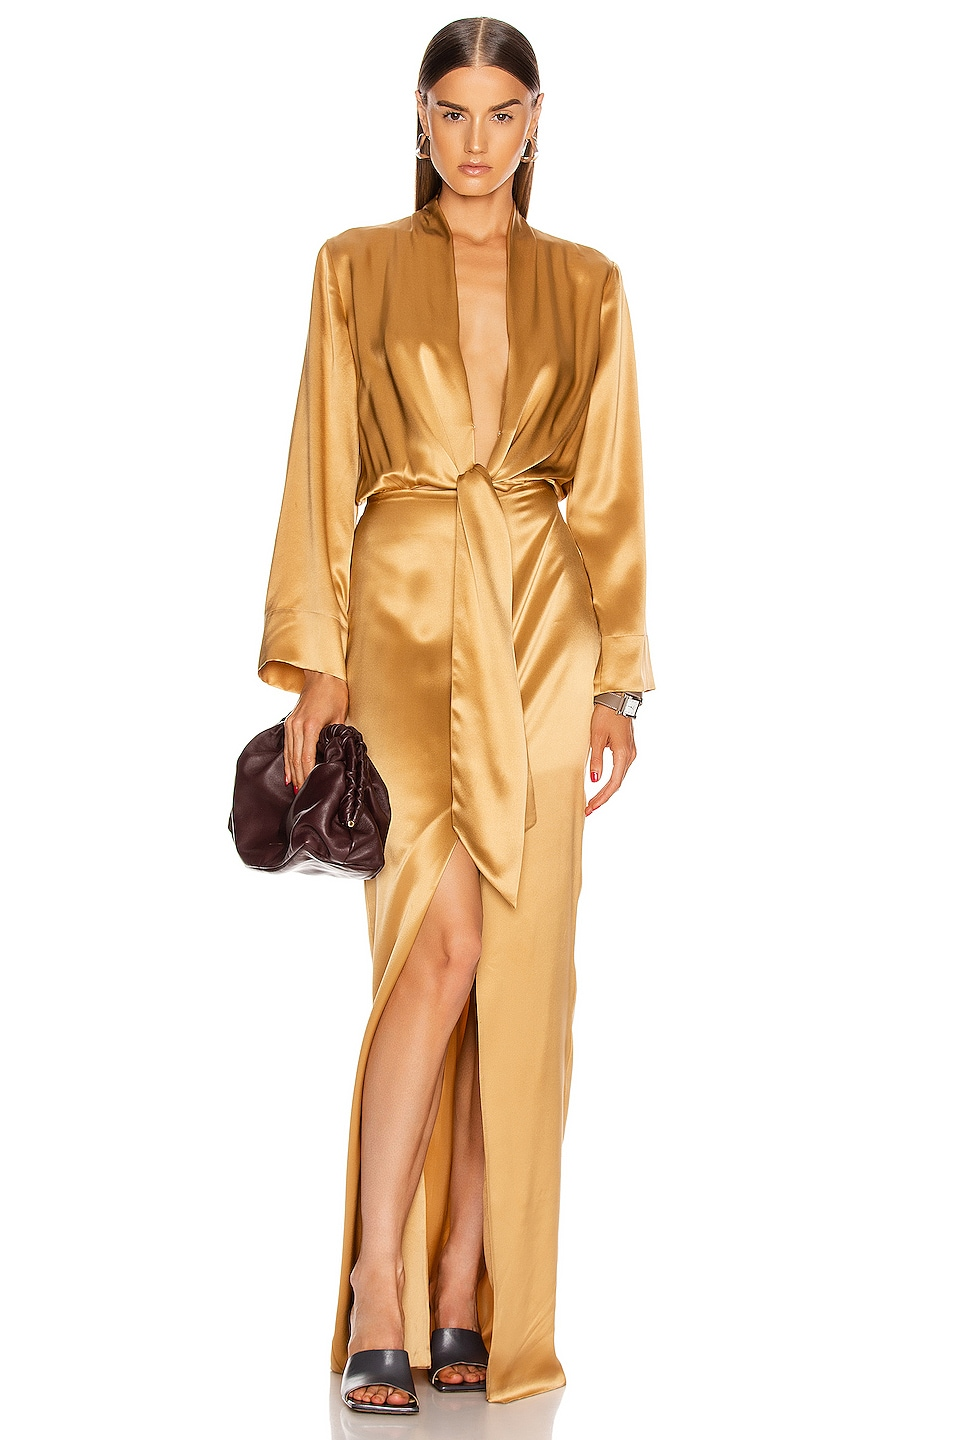 Image 1 of Michelle Mason for FWRD Kimono Tie Gown in Honey